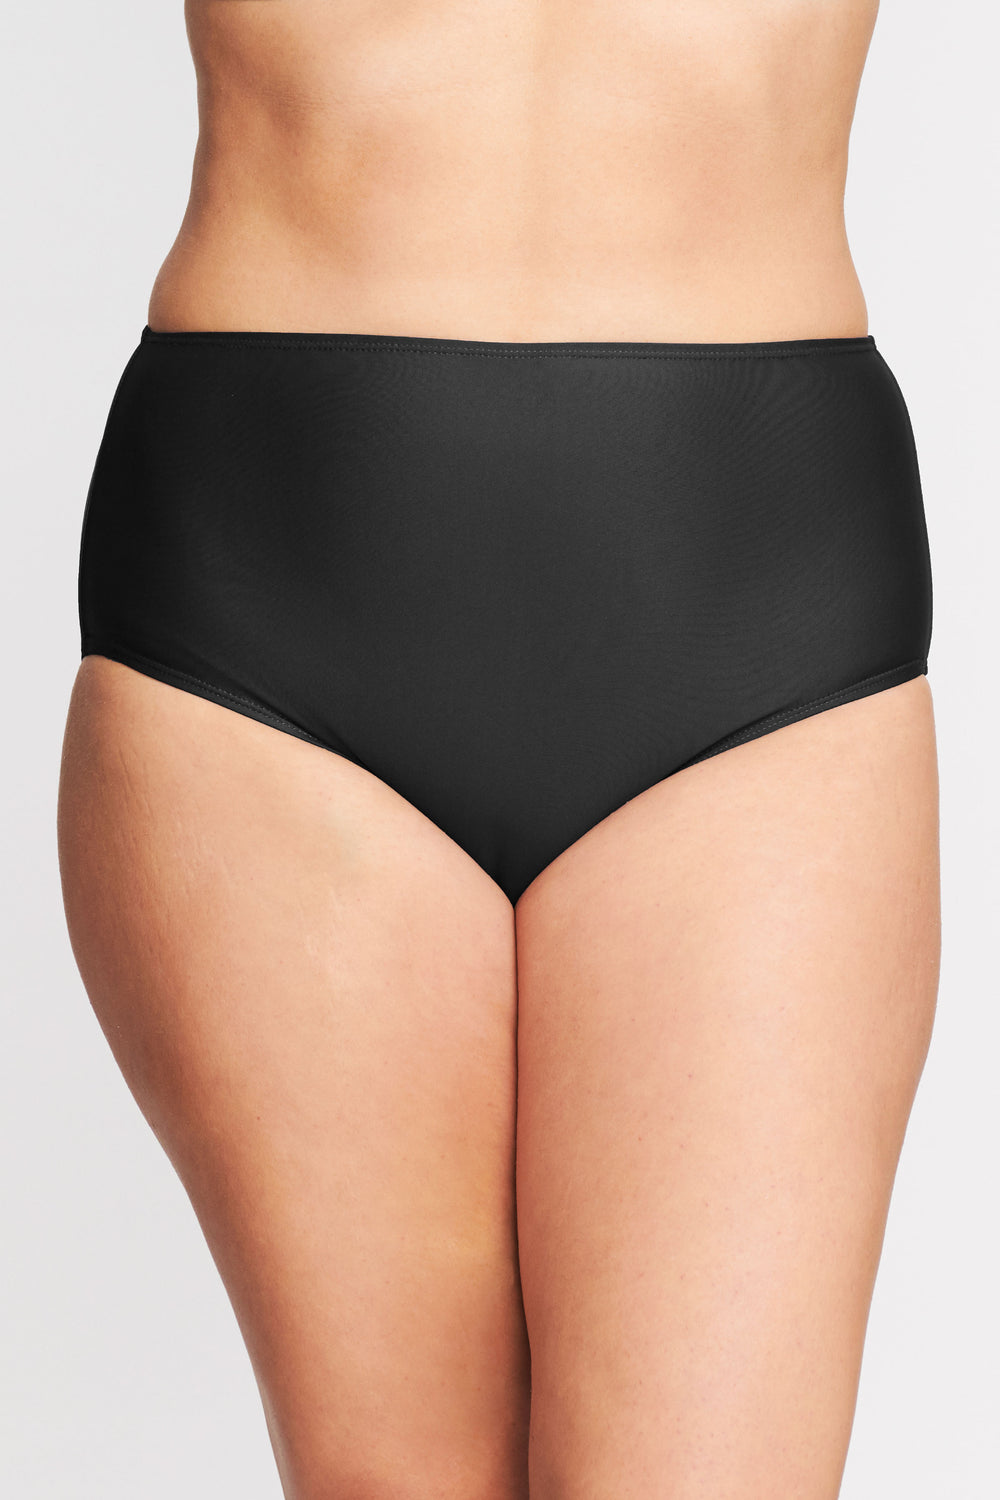 PLUS SIZE MID WAIST BRIEF IN SOLID BLACK BY MAZU SWIM